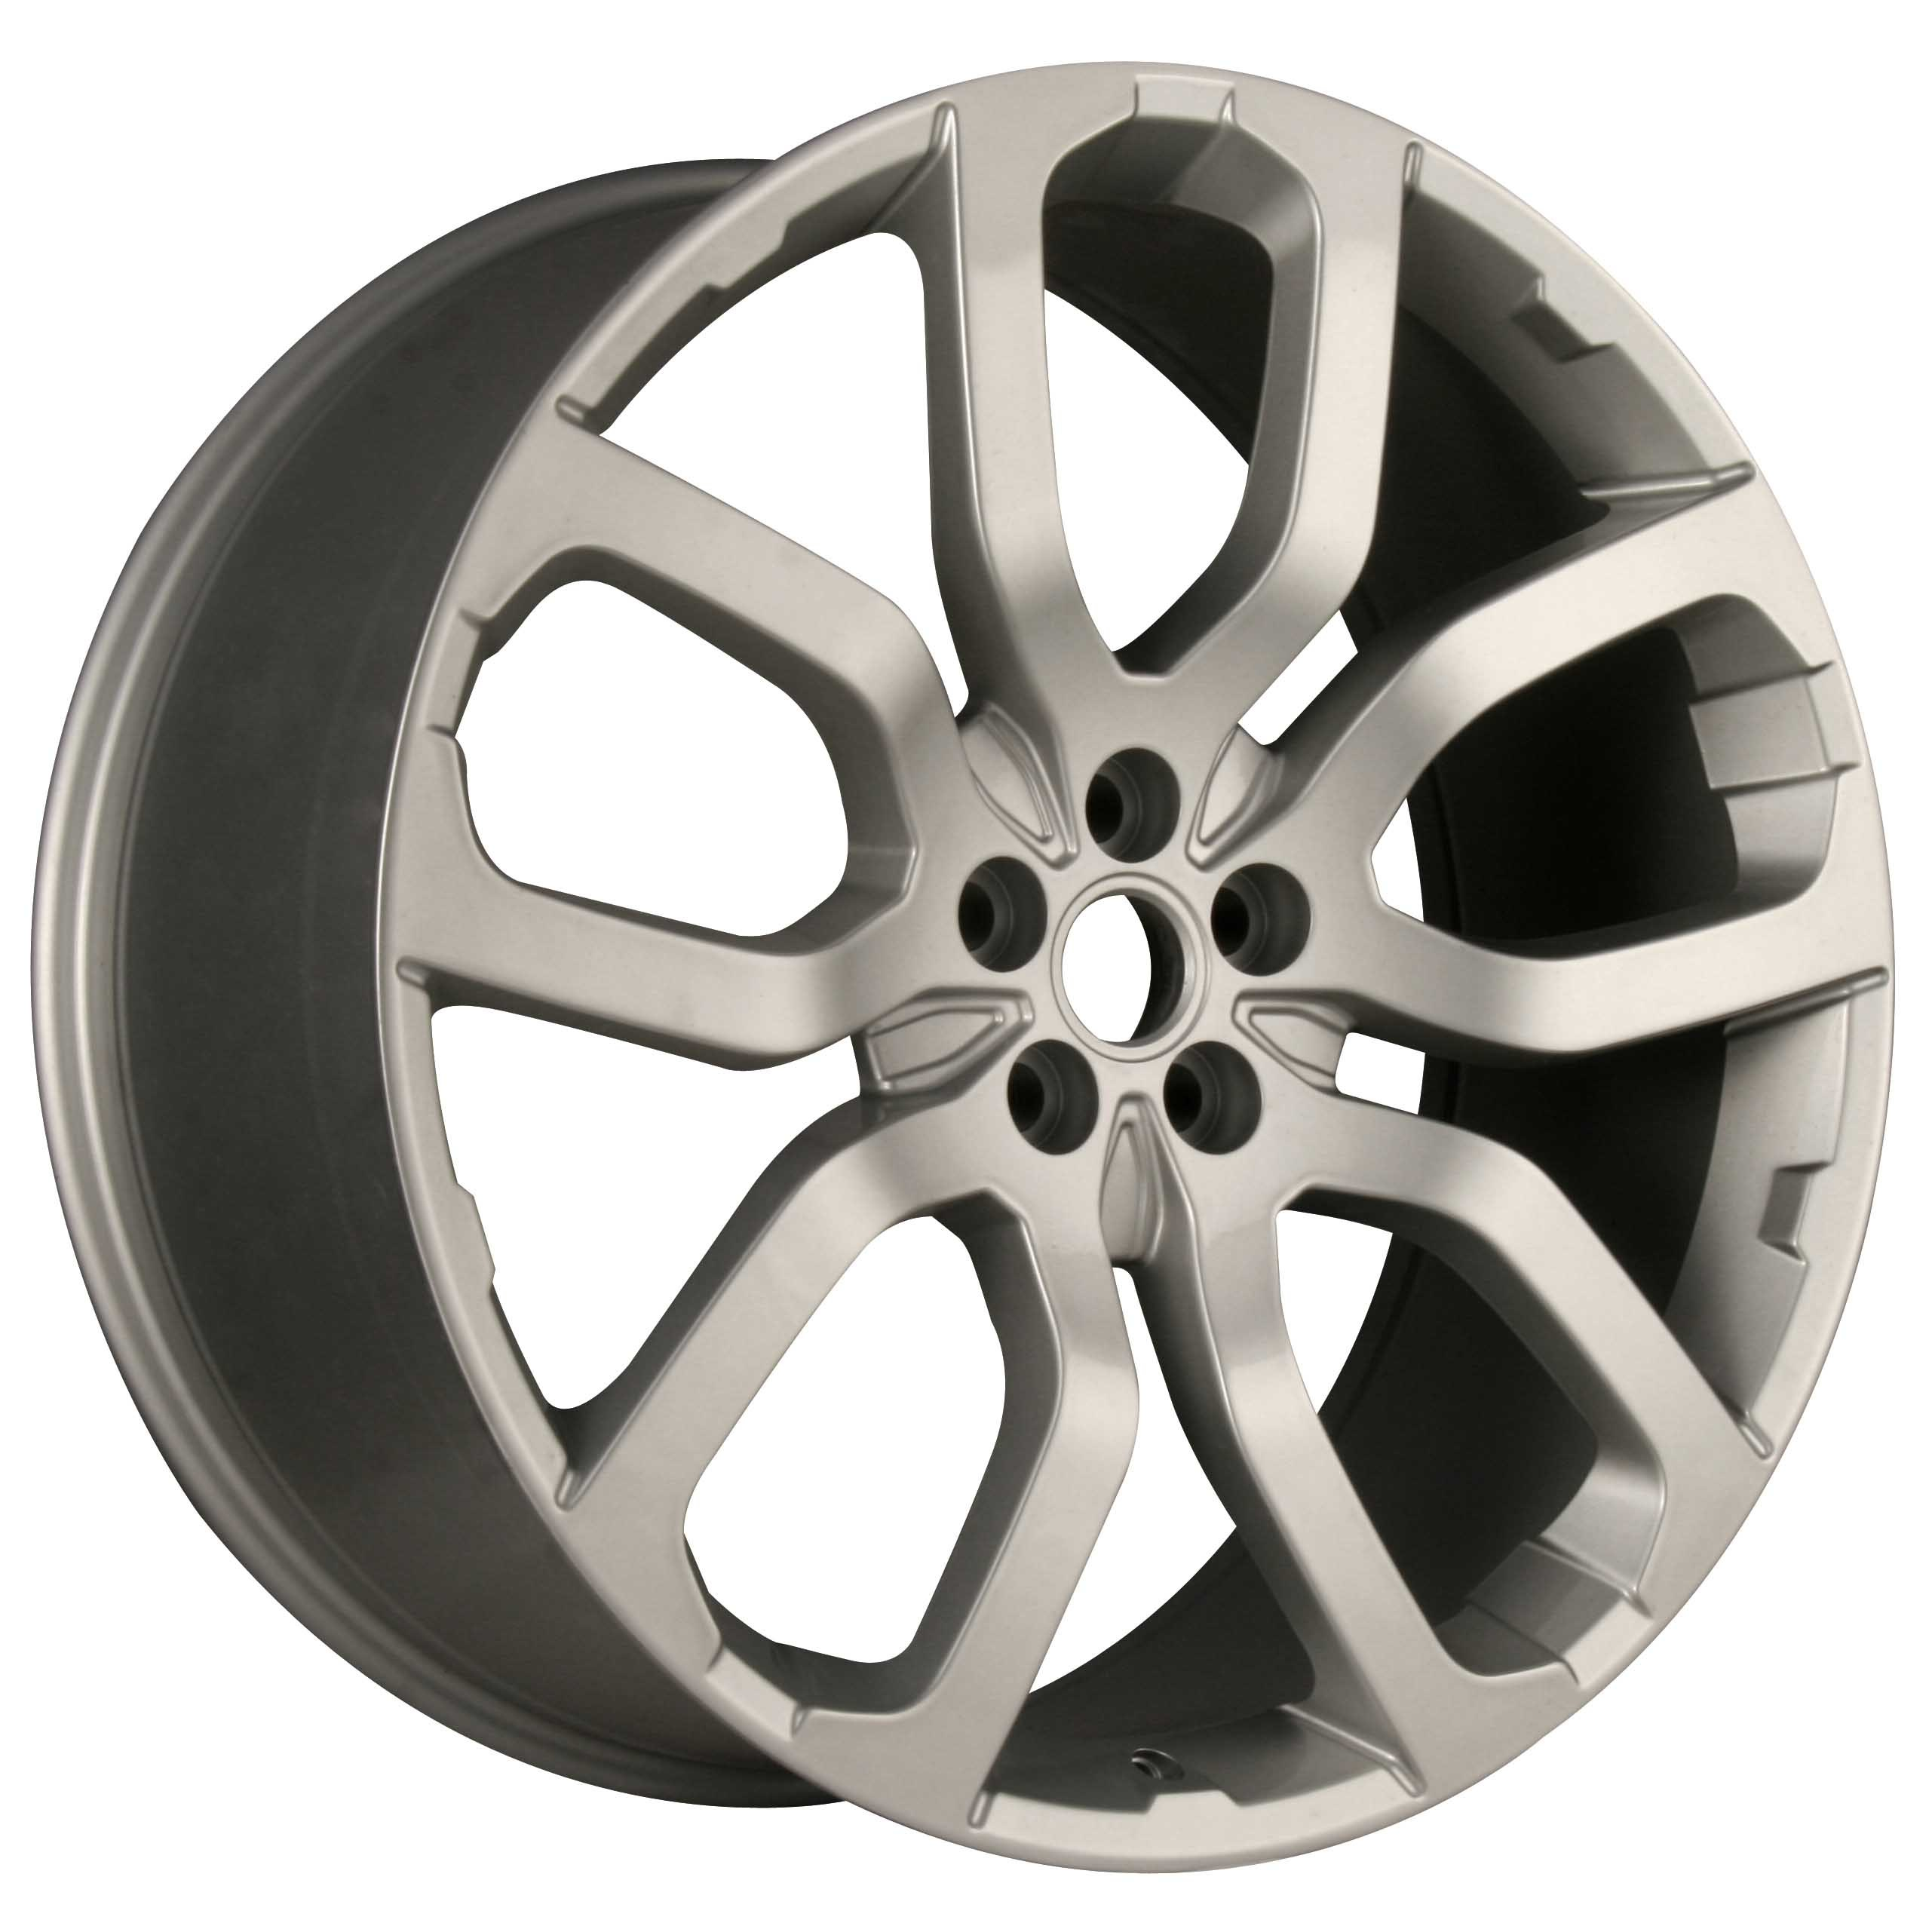 20inch and 22inch Alloy Wheel Replica Wheel for Landrover′s